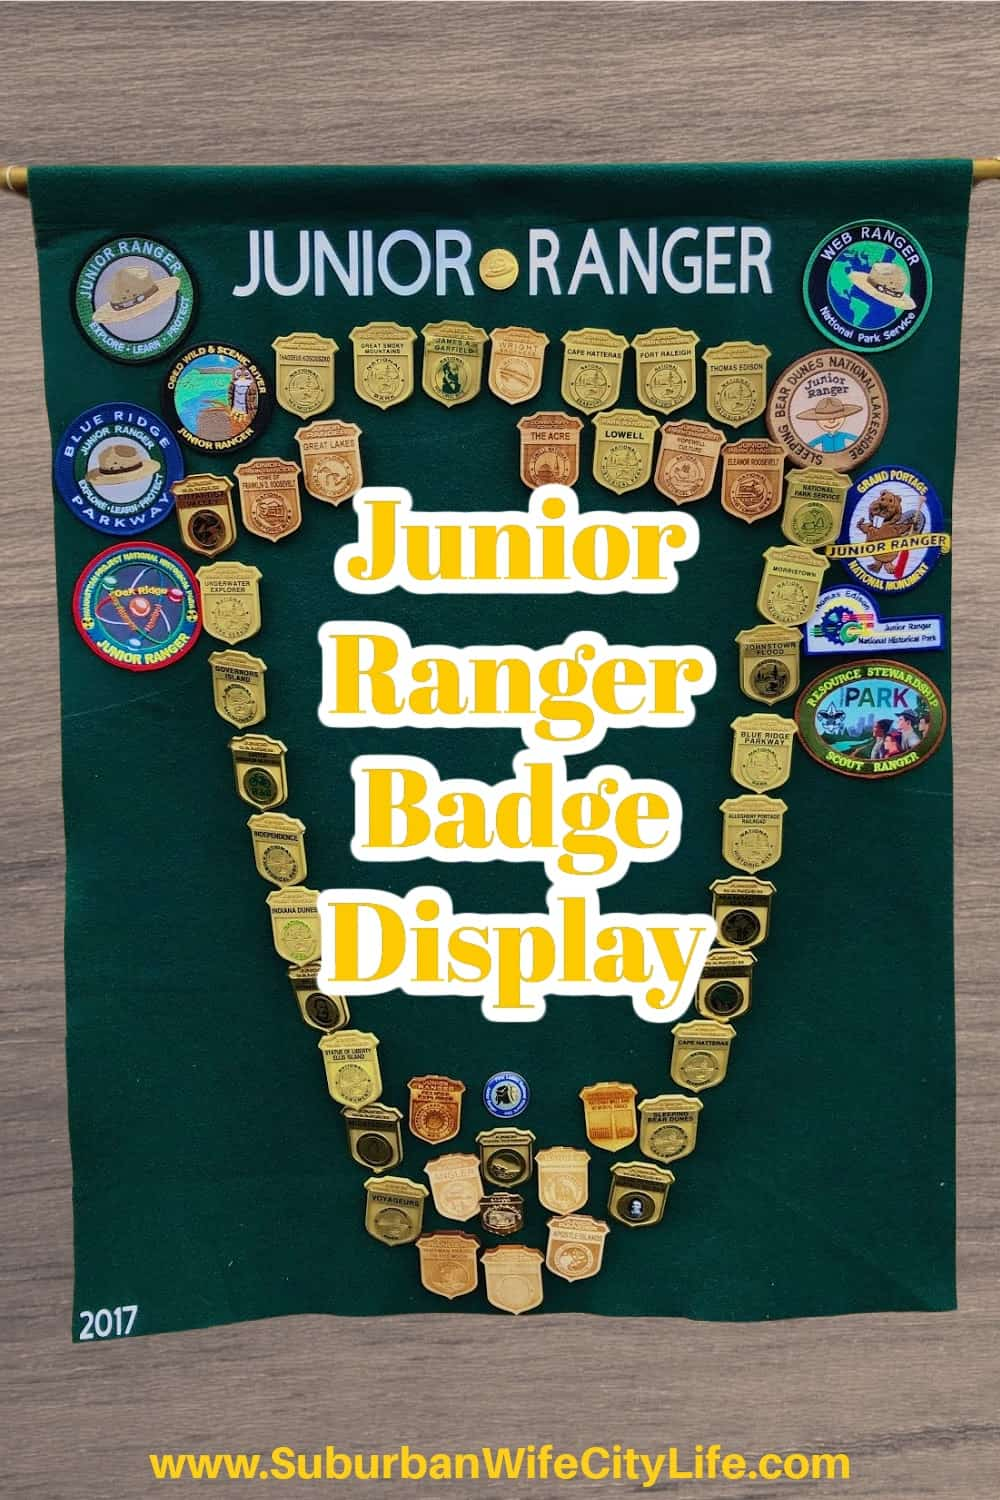 Junior Ranger Badge Display